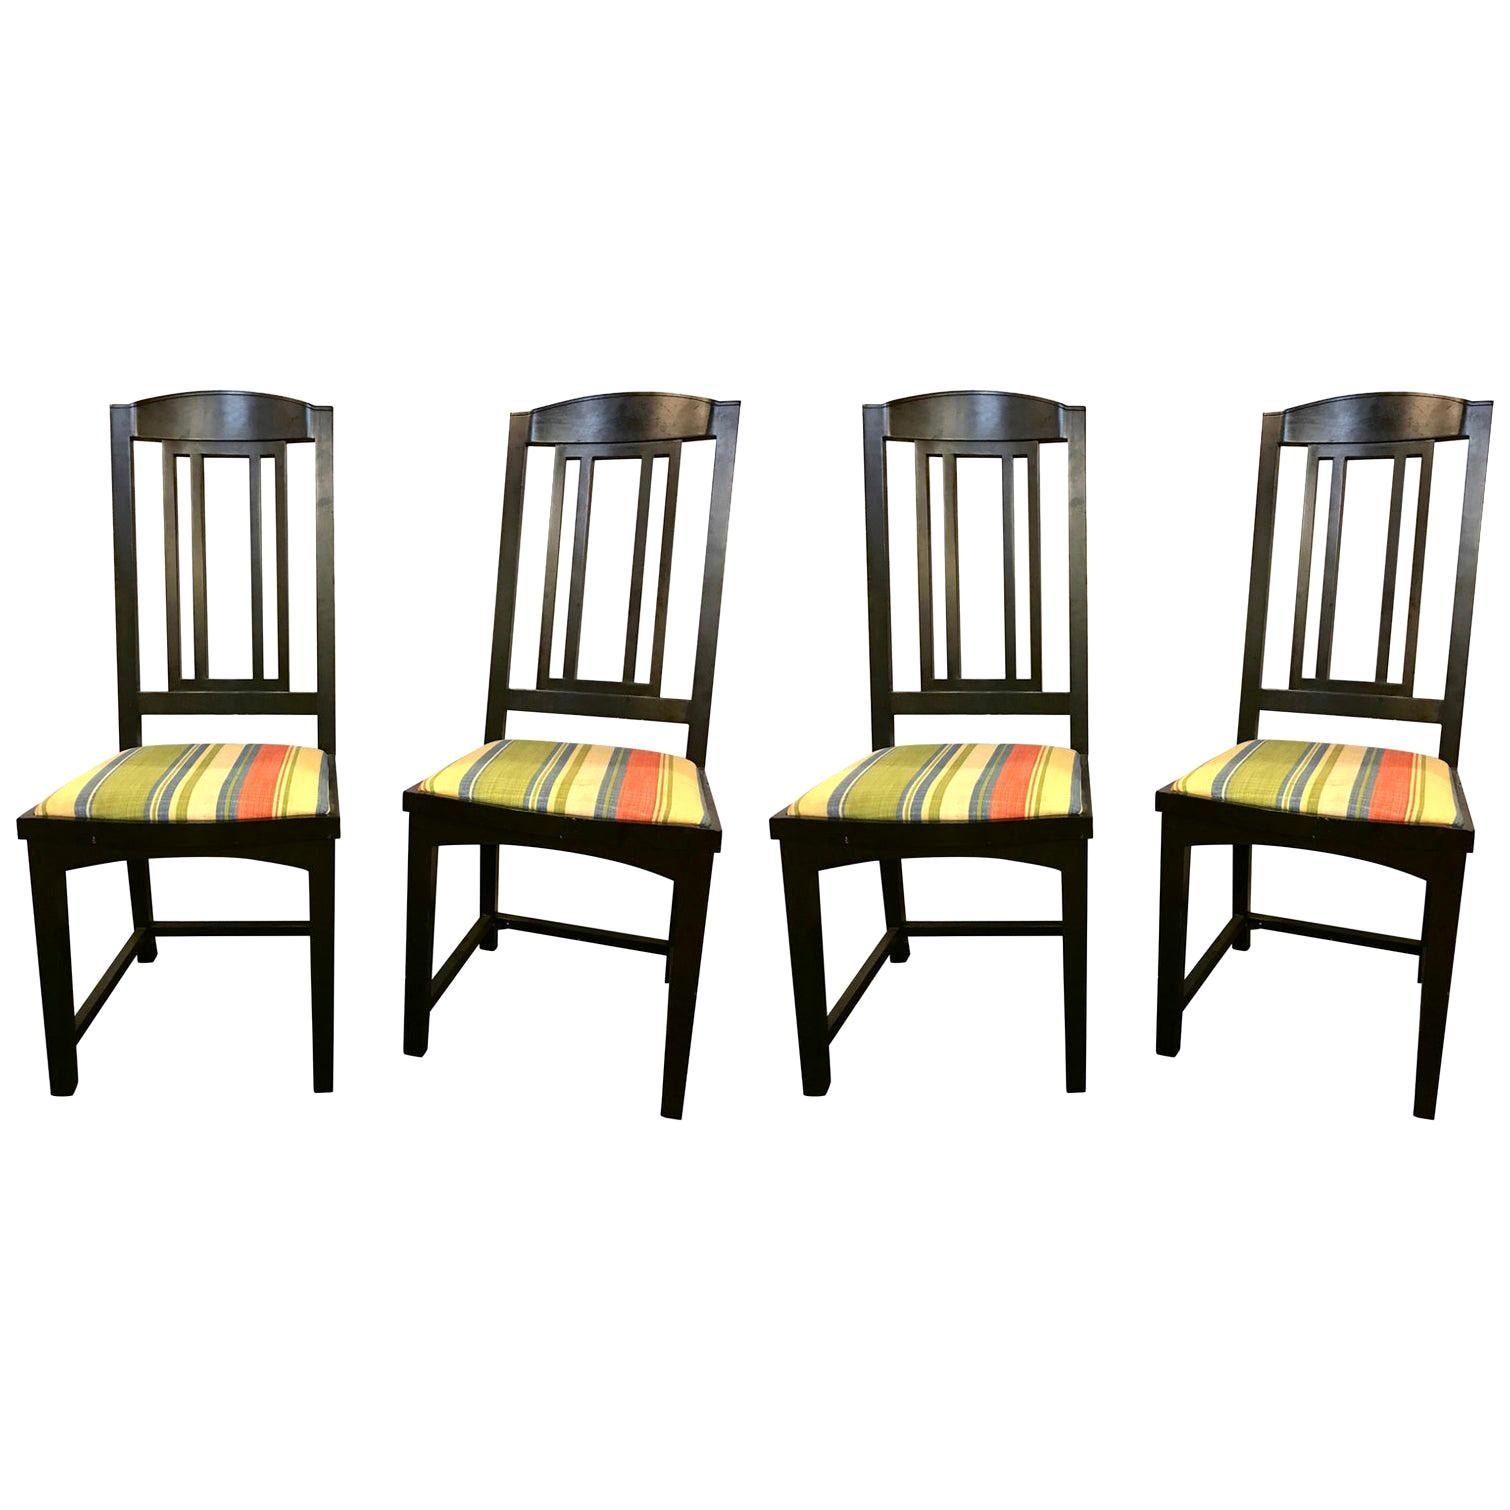 Ebony Pace Modern Collection Dining Chairs, Set of Four Slat Back